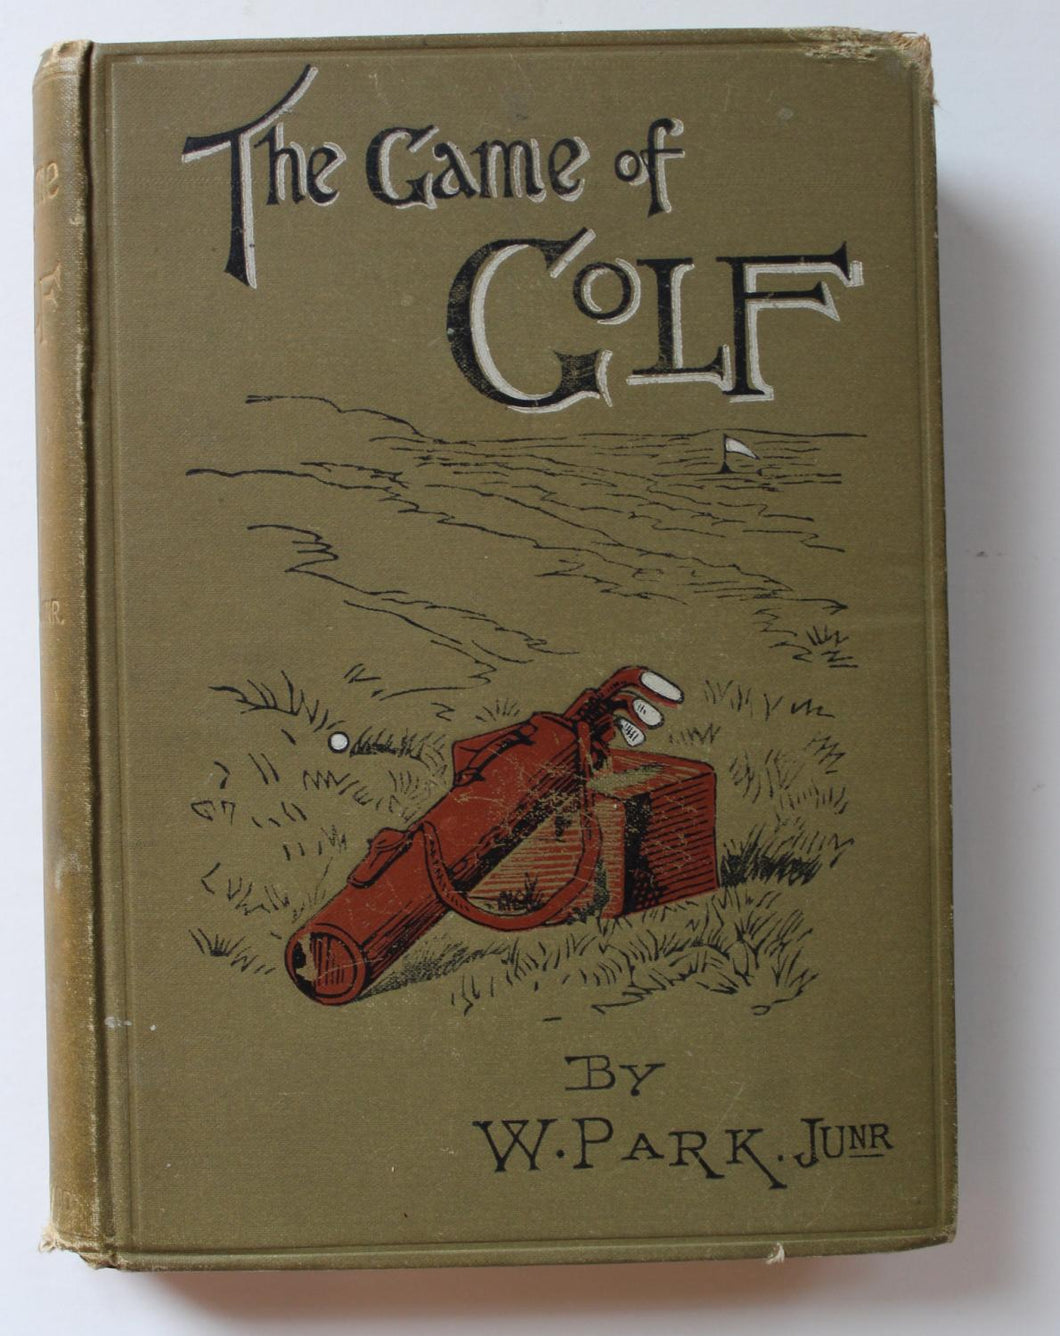 The Game of Golf by Willie Park, Jr.